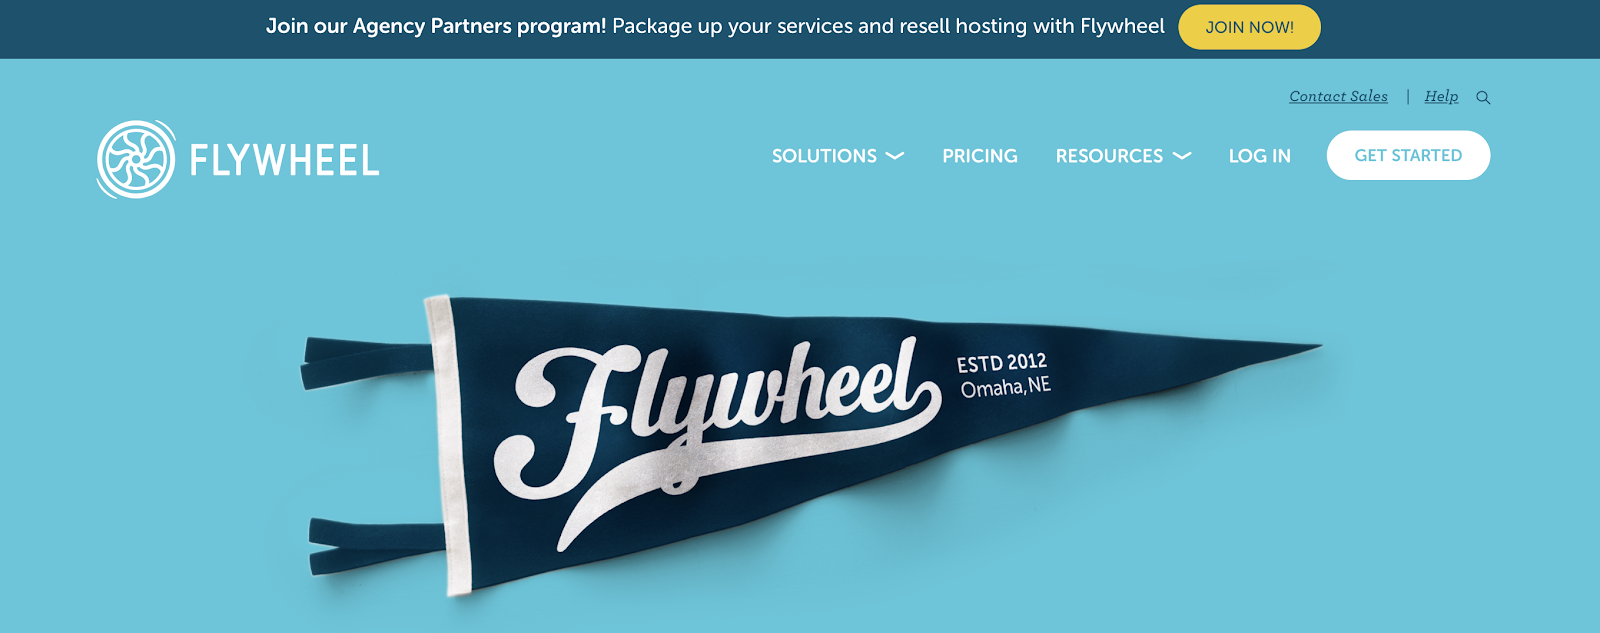 Flywheel Homepage Screenshot (Hosting Company)